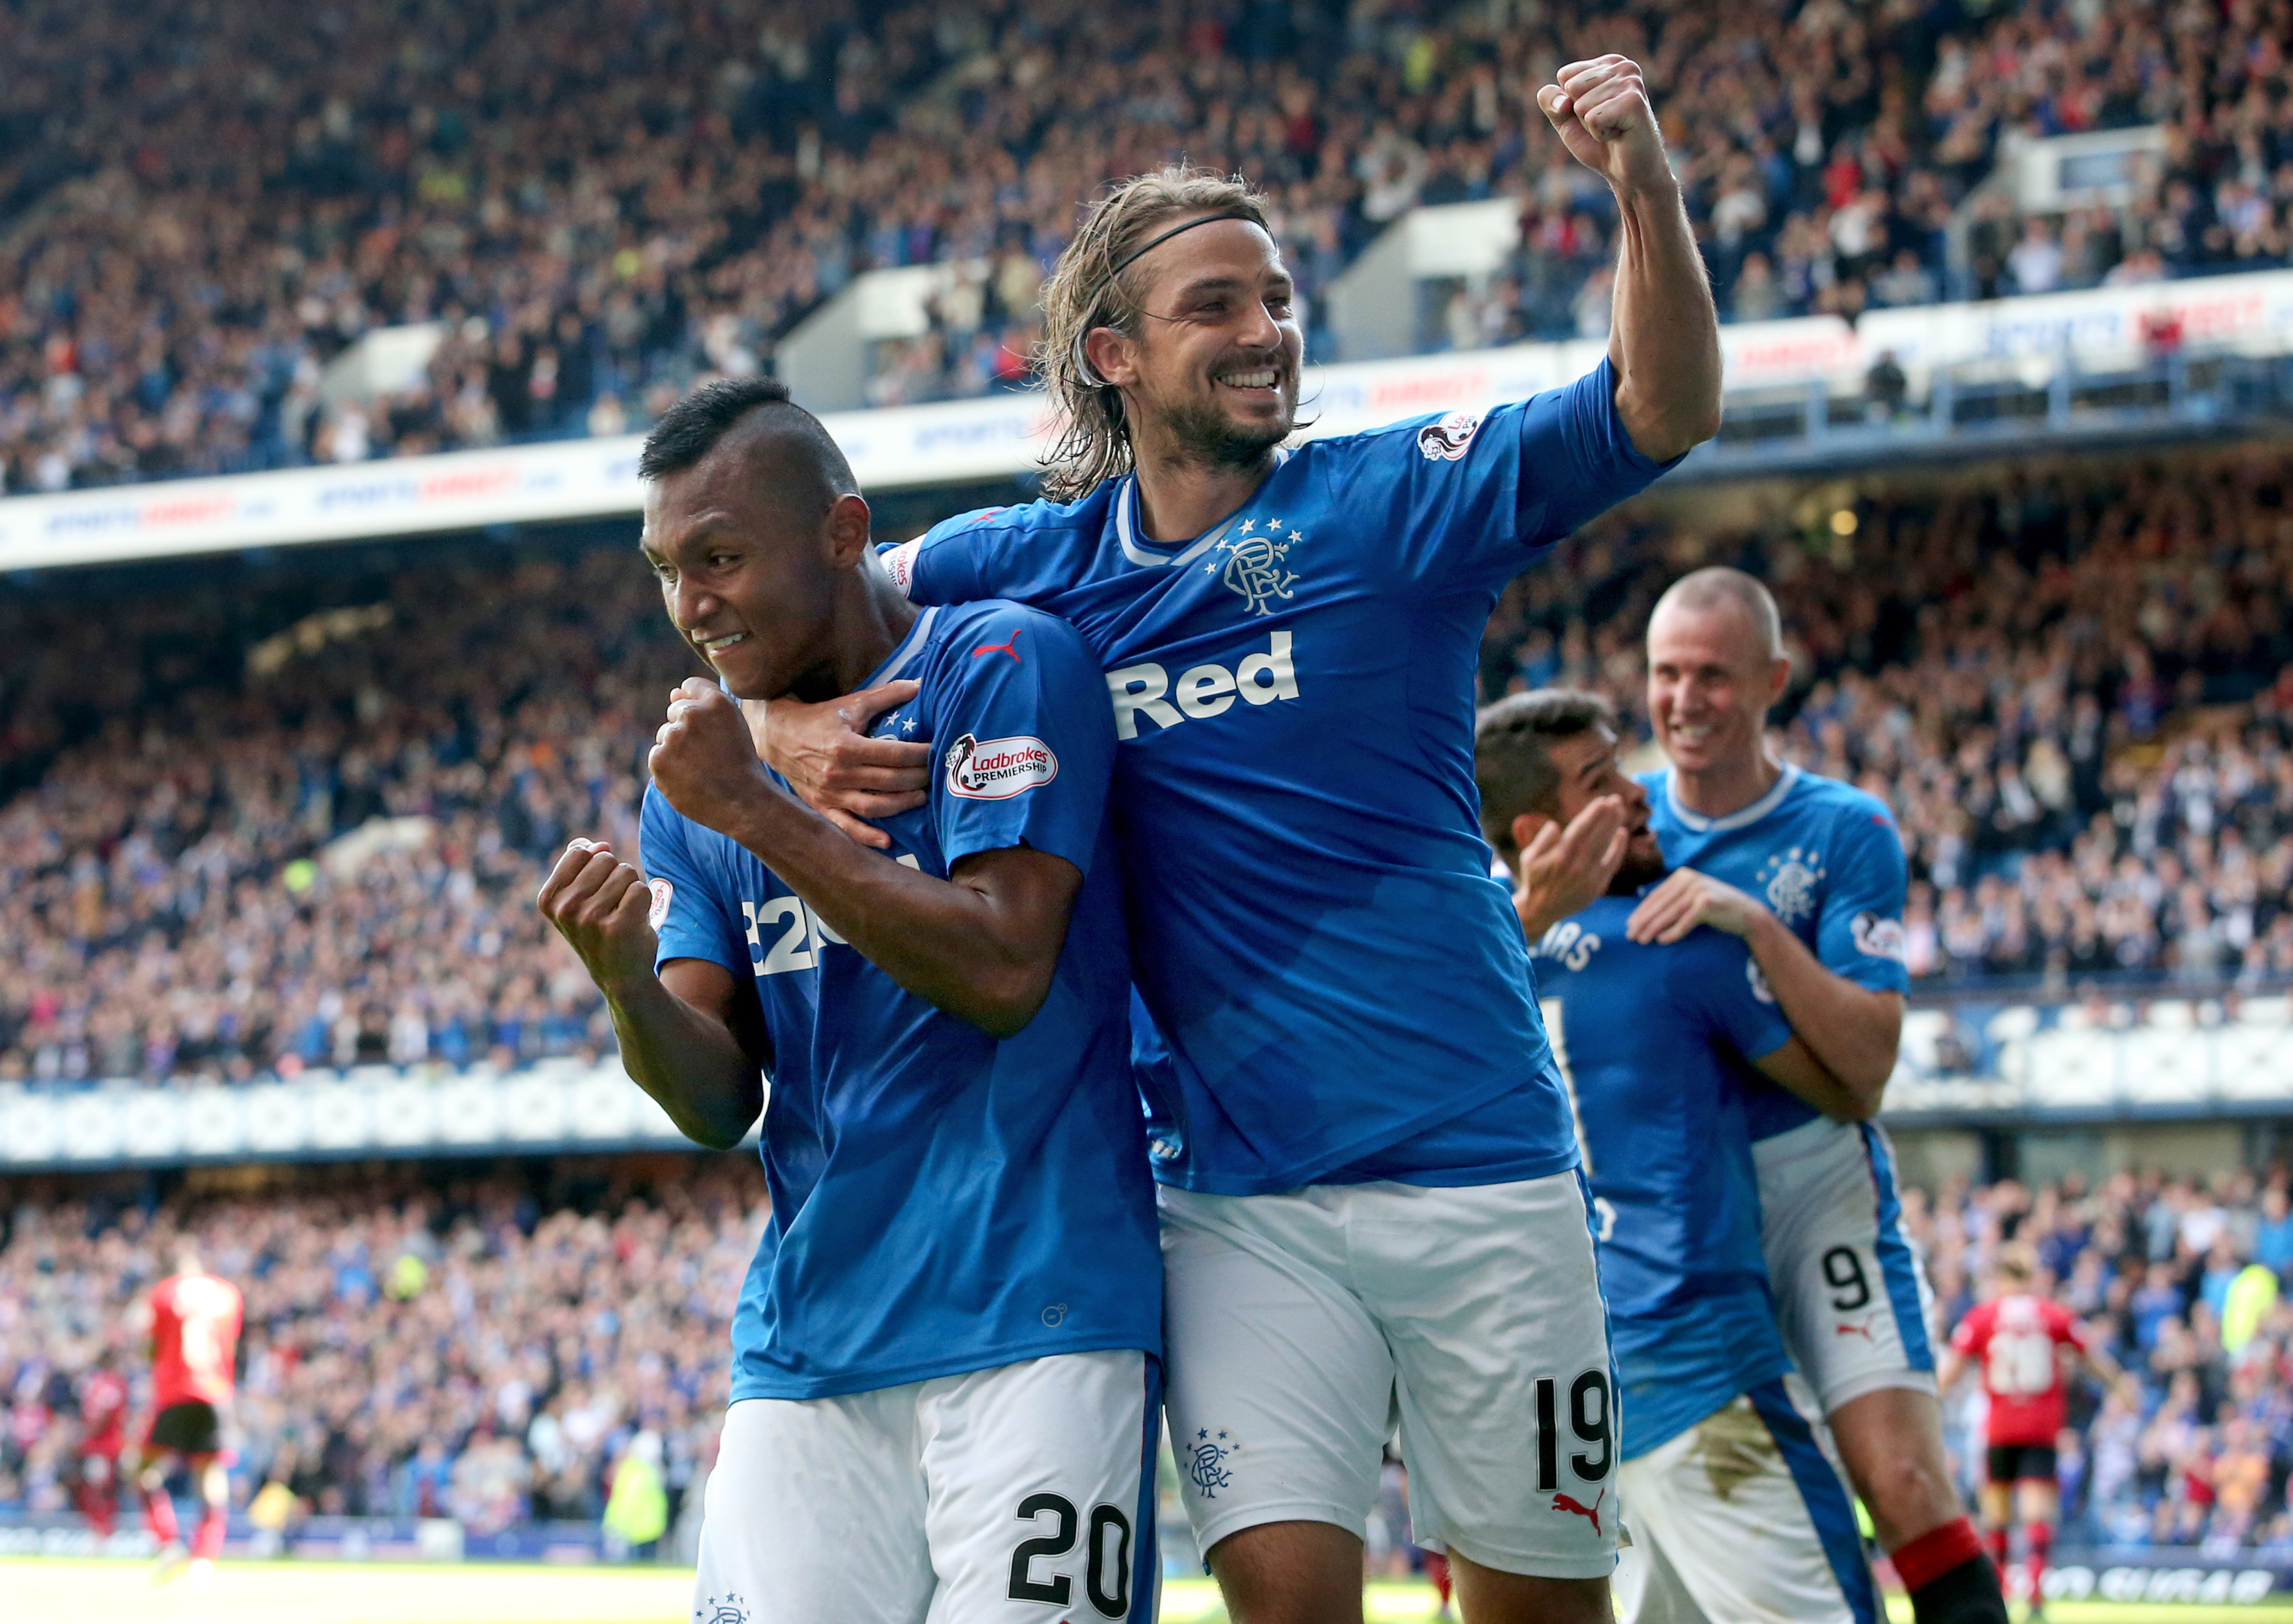 Rangers' Alfredo Morelos celebrates scoring his side's first goal with team-mate Niko Kranjcar (right)